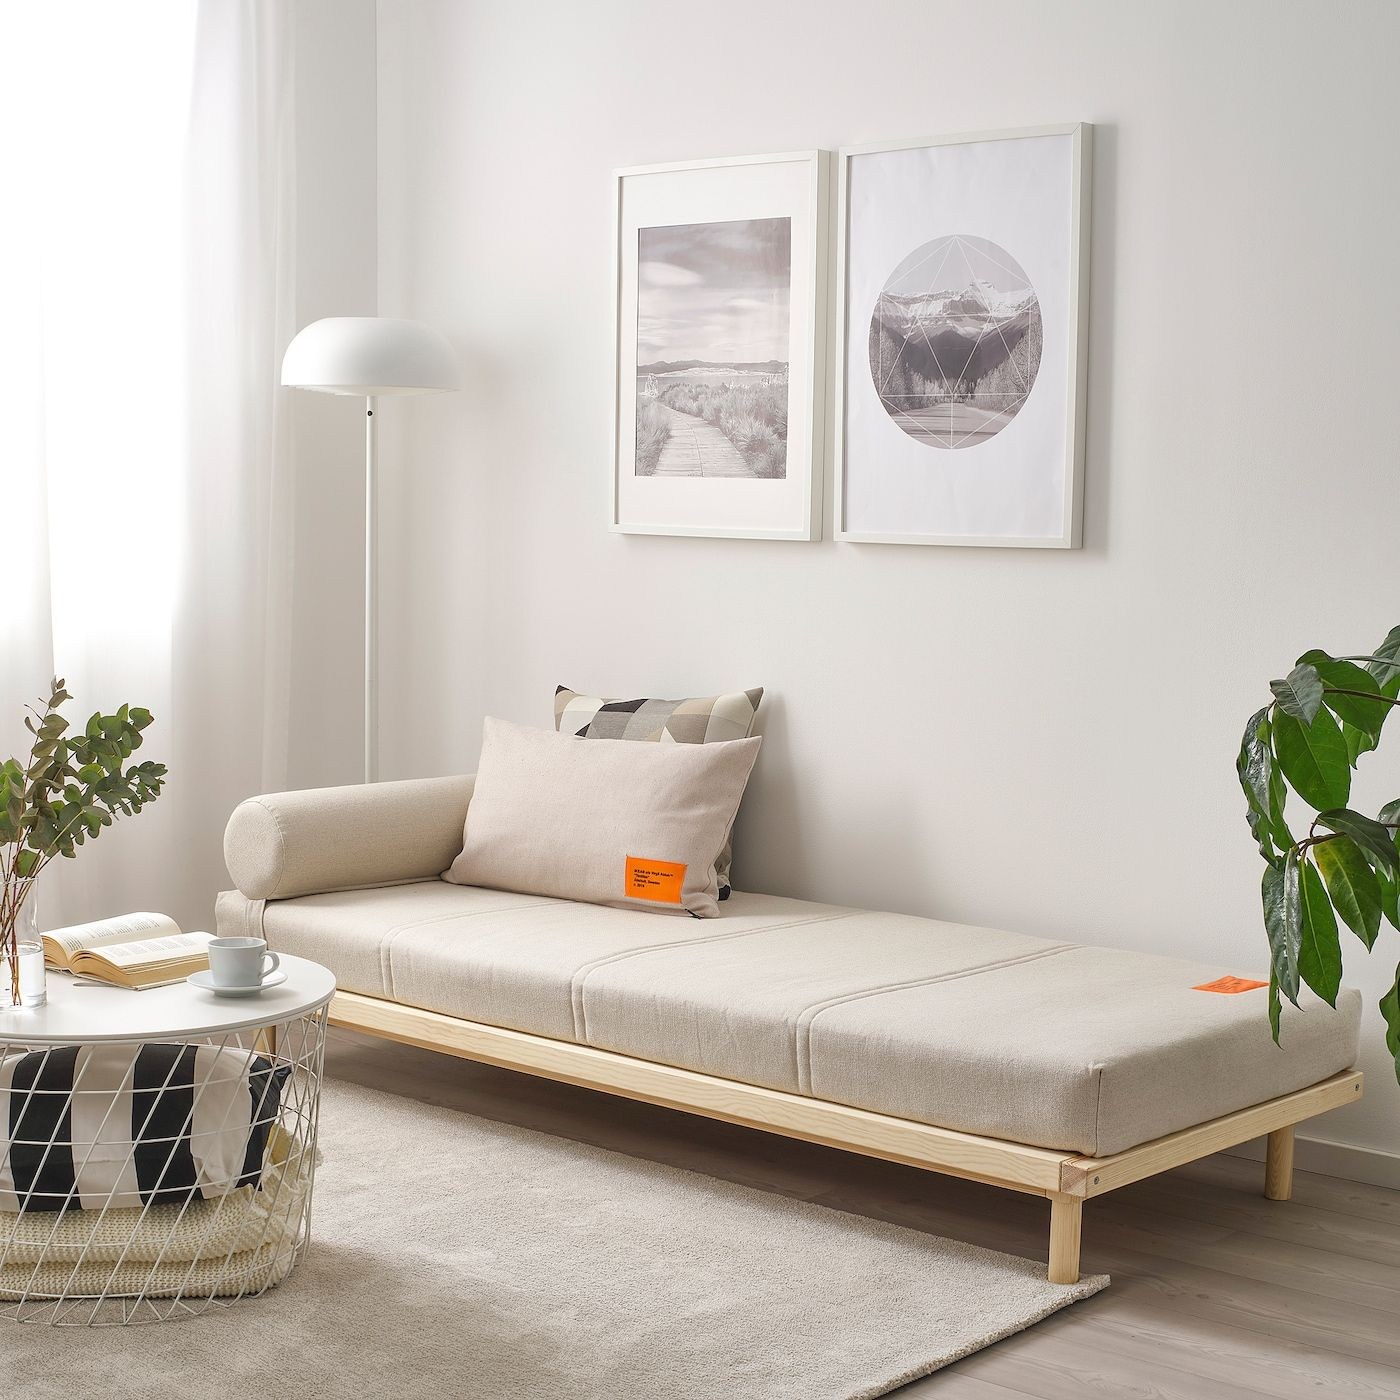 MARKERAD Daybed 80x200 cm (2020) Ikea daybed, Ikea bed